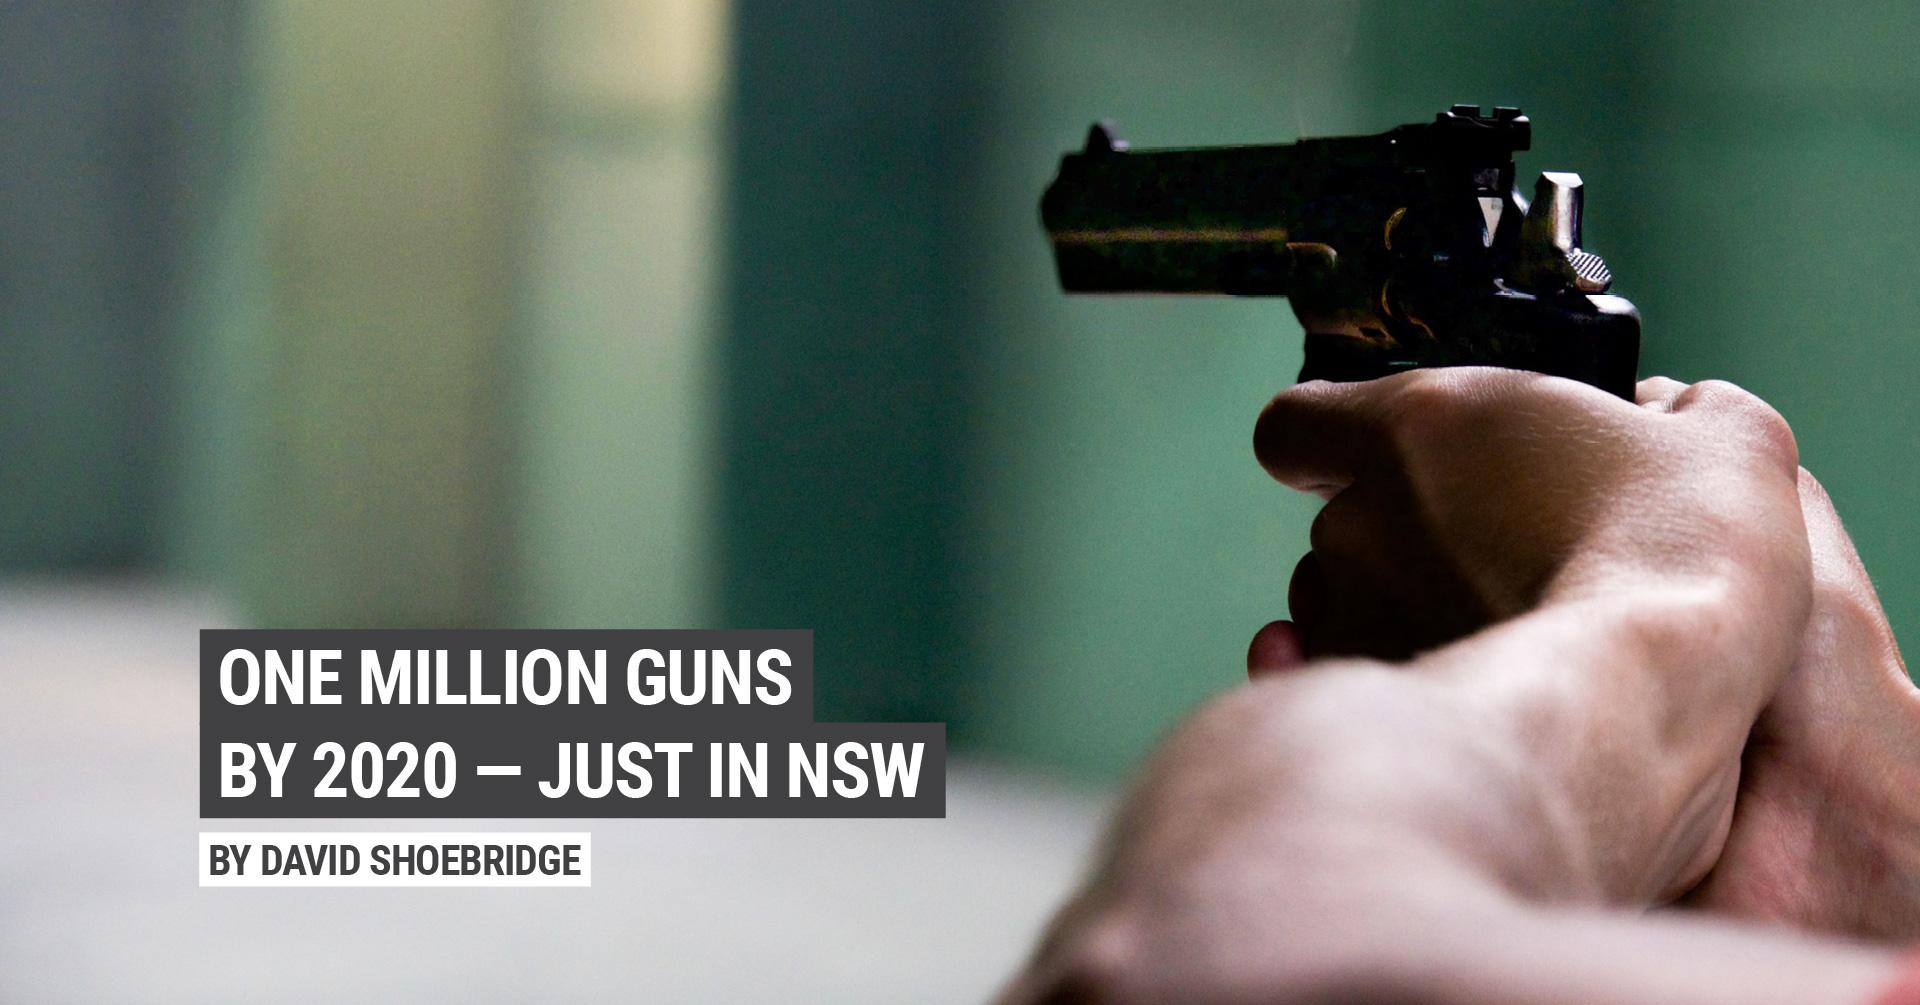 image of a hand holding a gun with the text 1 million guns by 2020, by David Shoebridge